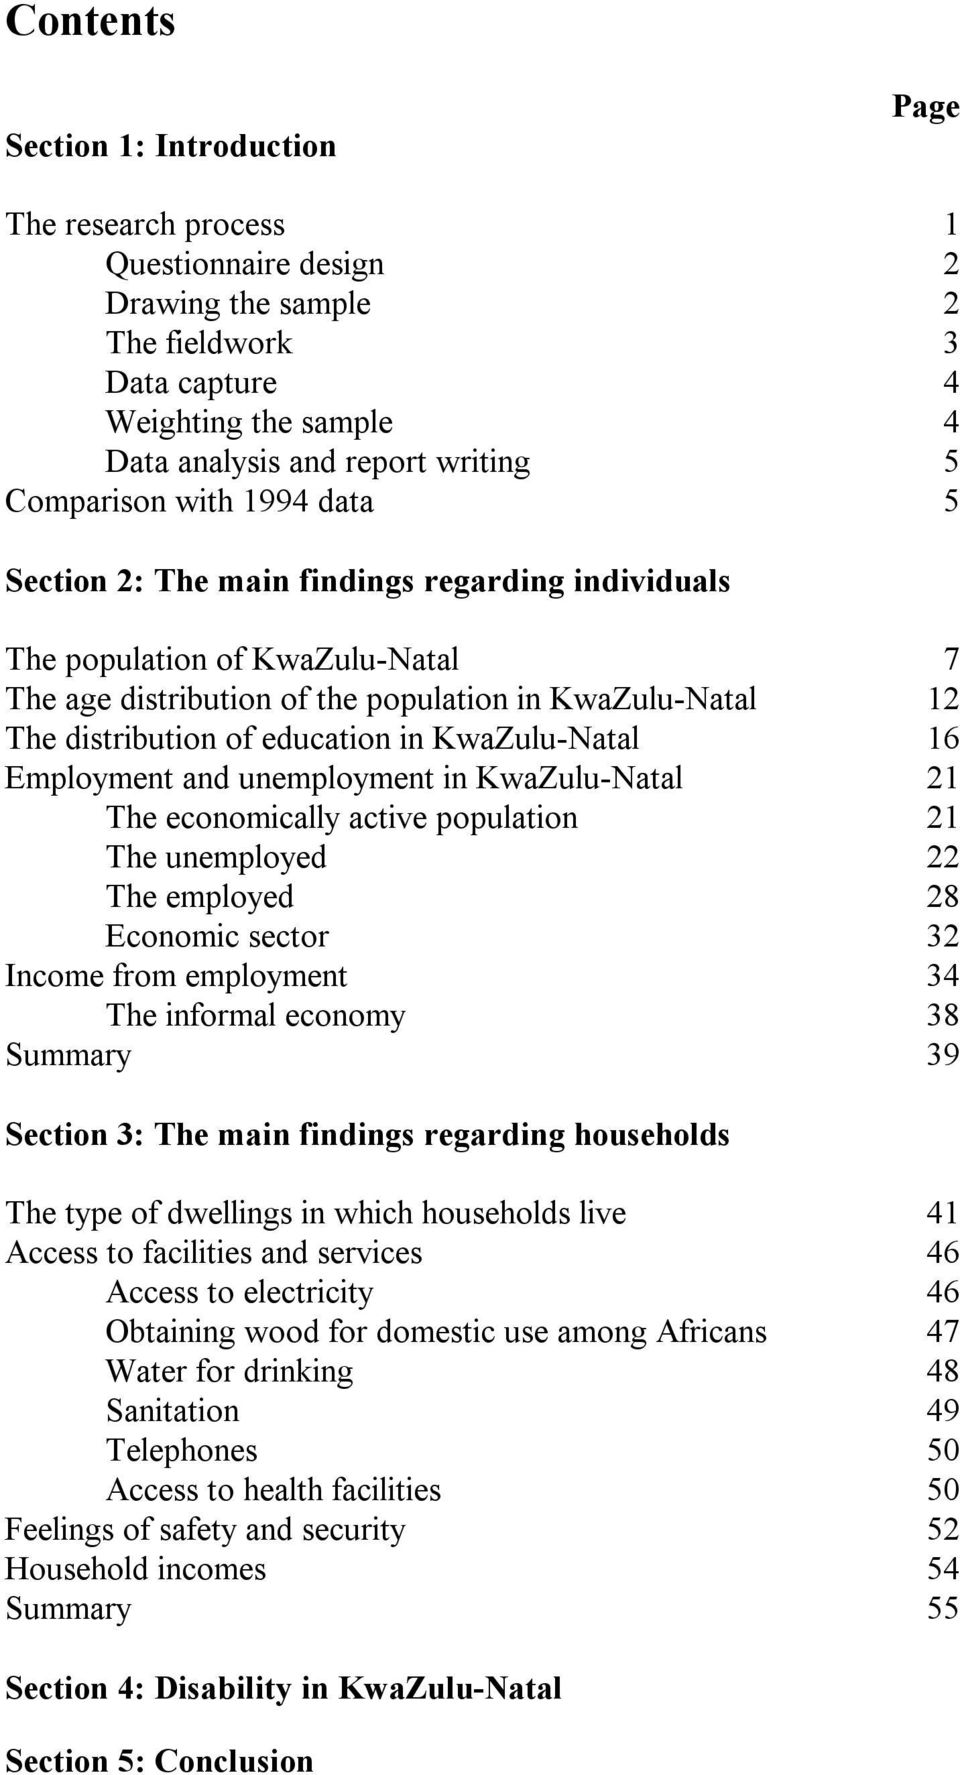 education in KwaZulu-Natal 16 Employment and unemployment in KwaZulu-Natal 21 The economically active population 21 The unemployed 22 The employed 28 Economic sector 32 Income from employment 34 The